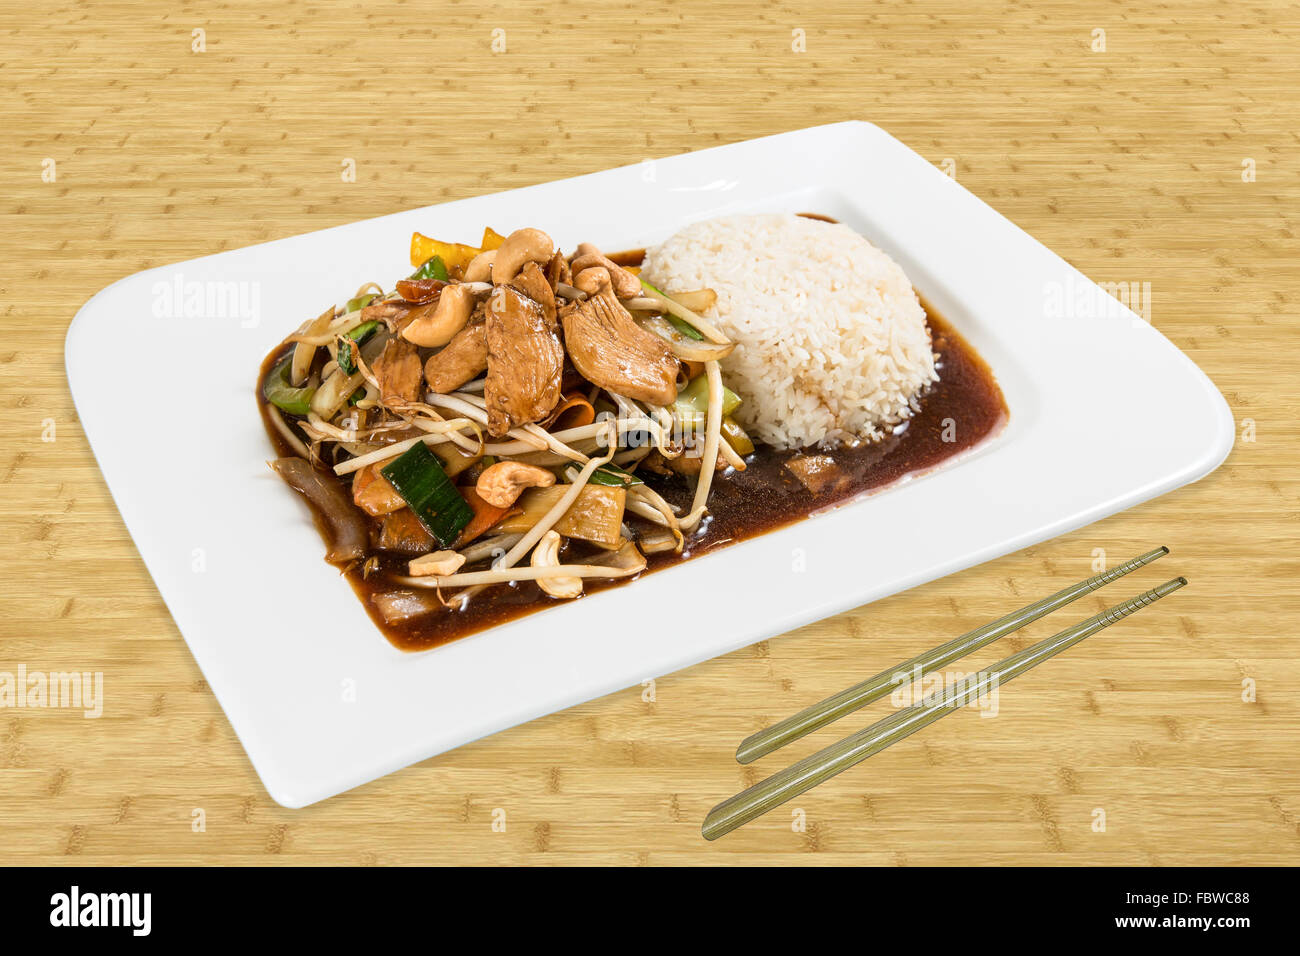 Chinese Asia Food. Pork, bean sprouts with vegetables, cashjew cores  and rice. Plate standing on a wood table with - Stock Image